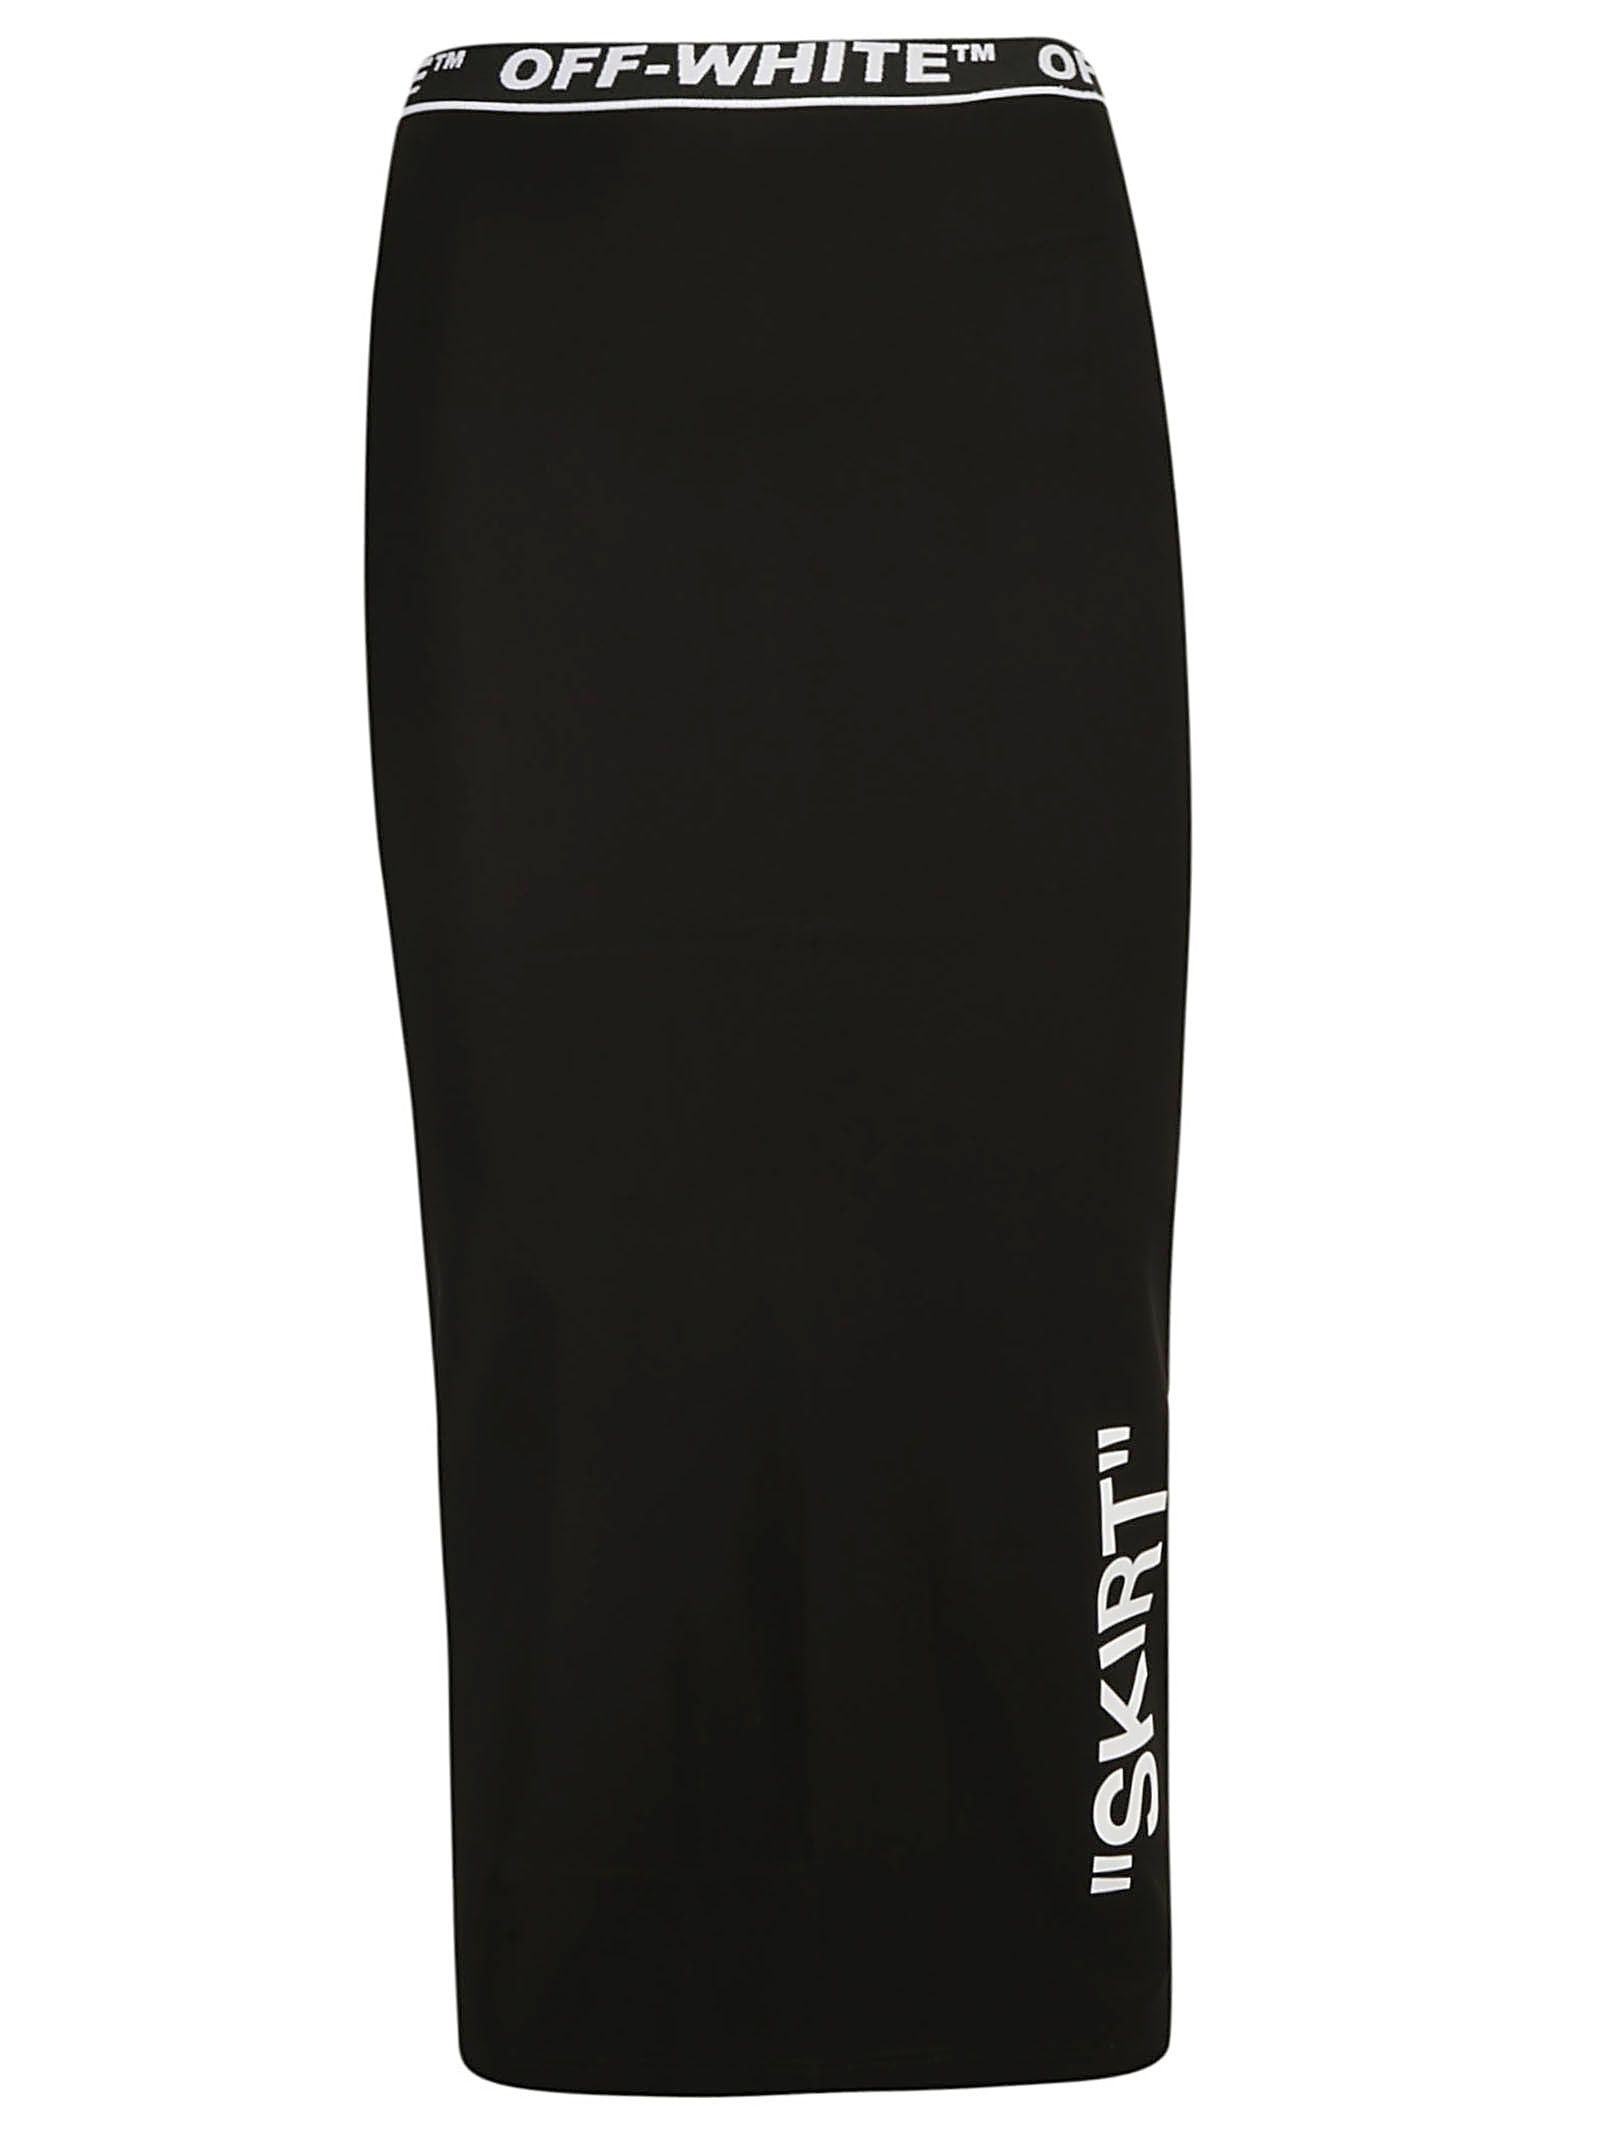 Off-white Pencil Skirt